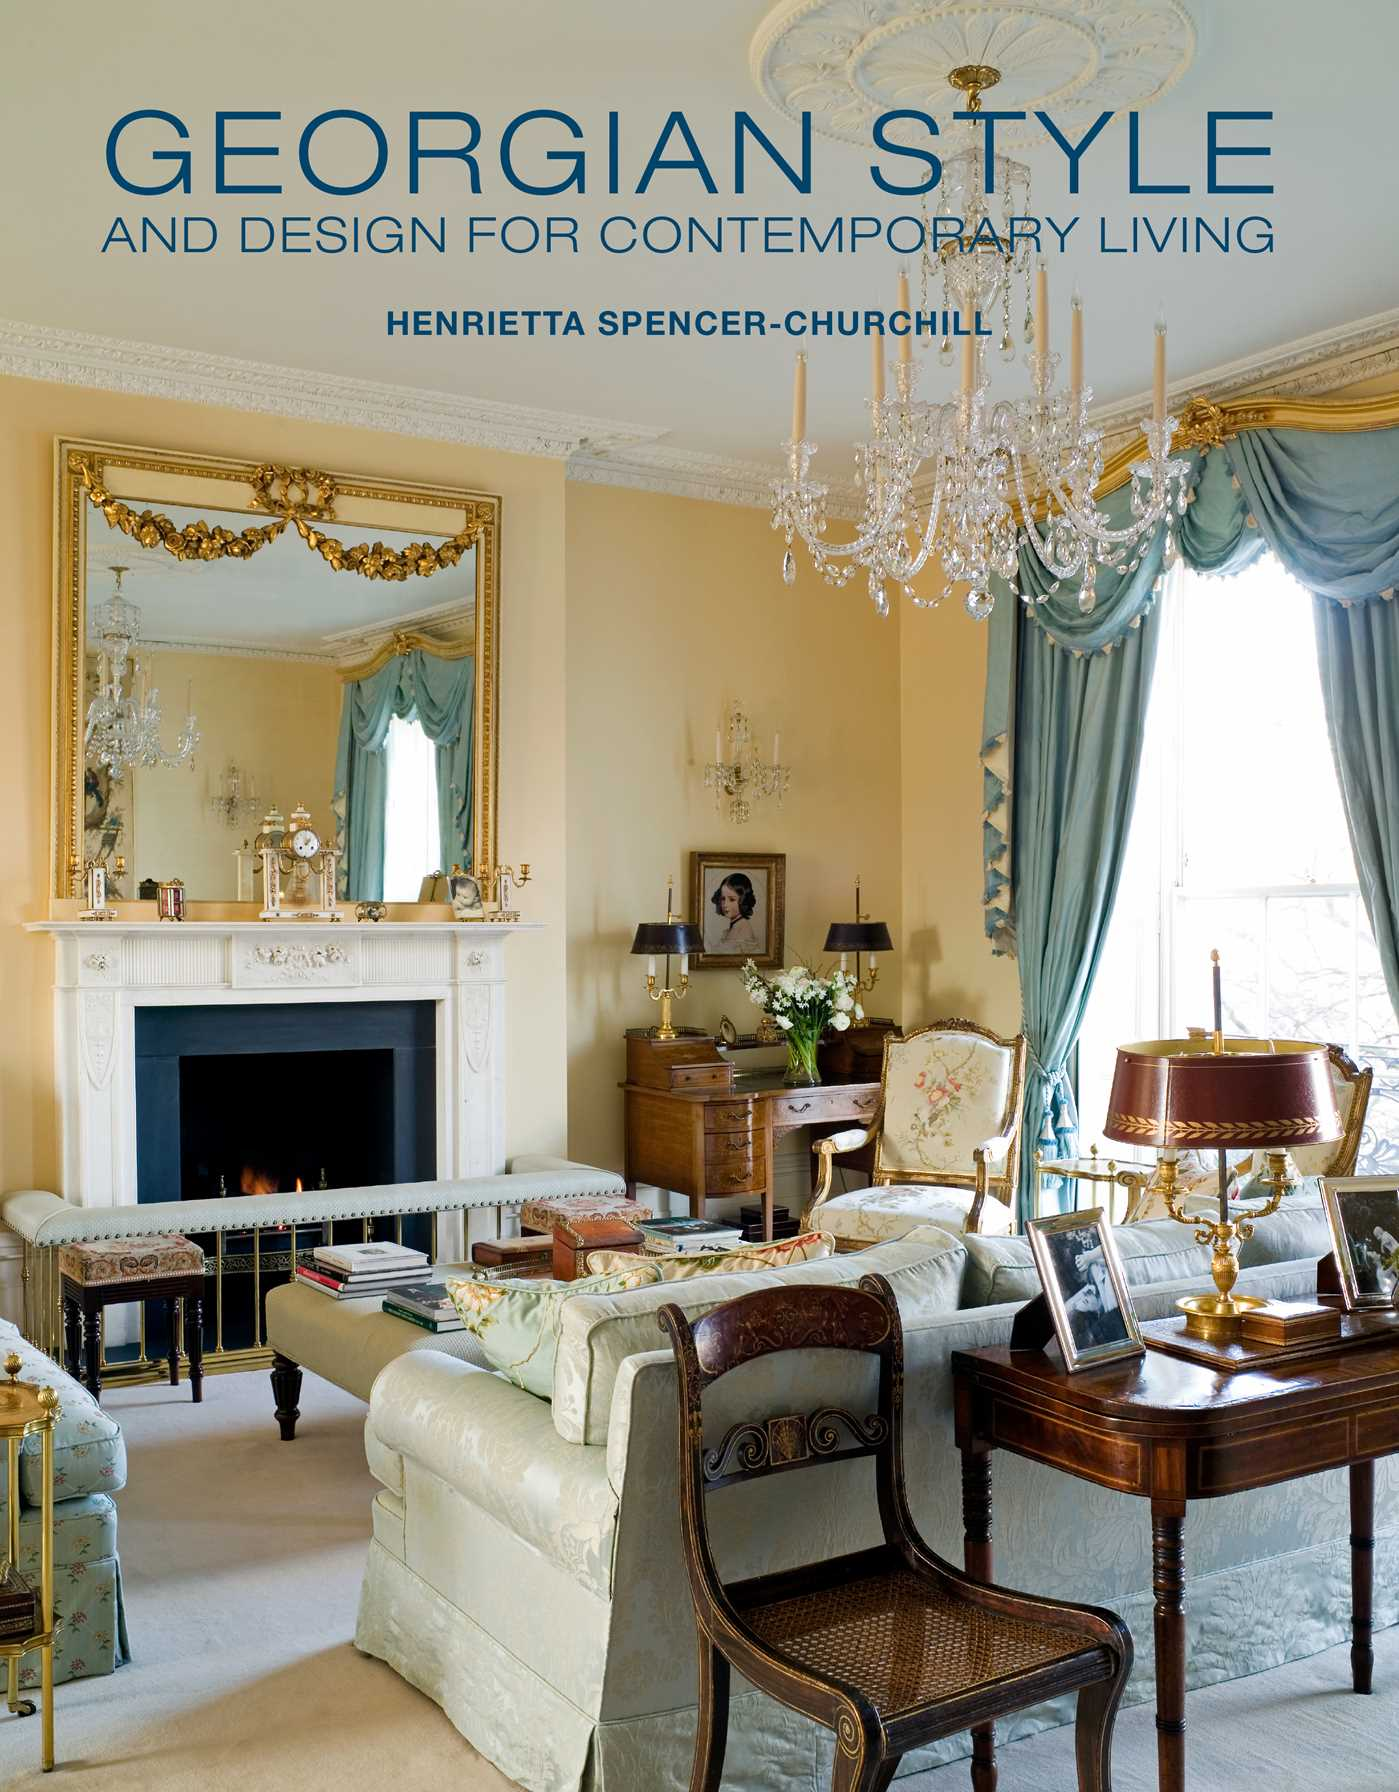 Georgian Style and Design for Contemporary Living Book by